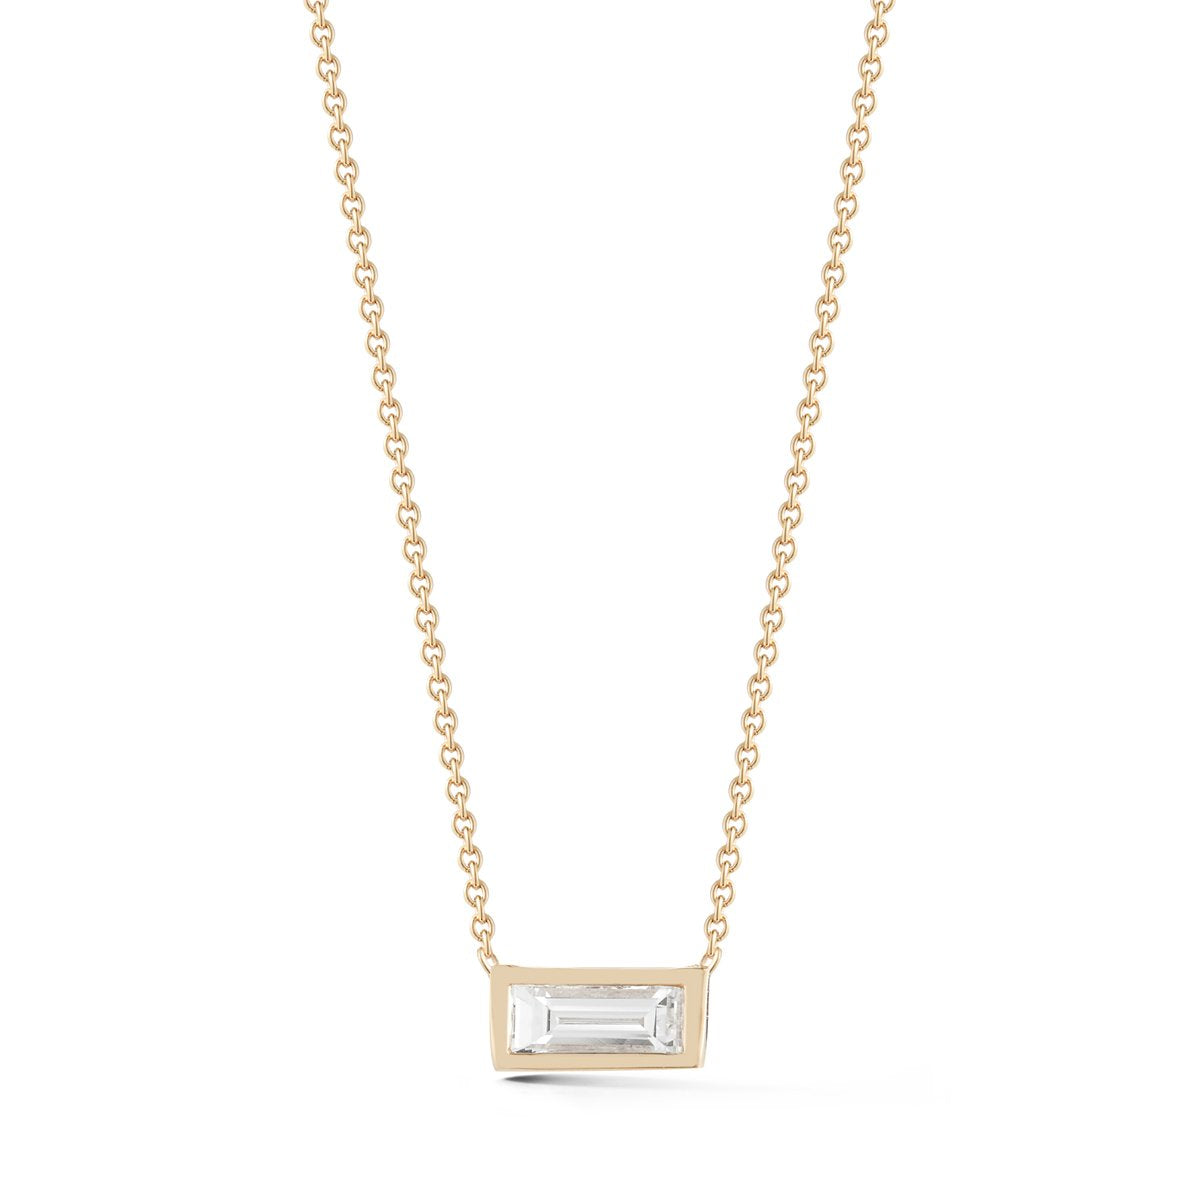 Small Baguette Diamond Necklace